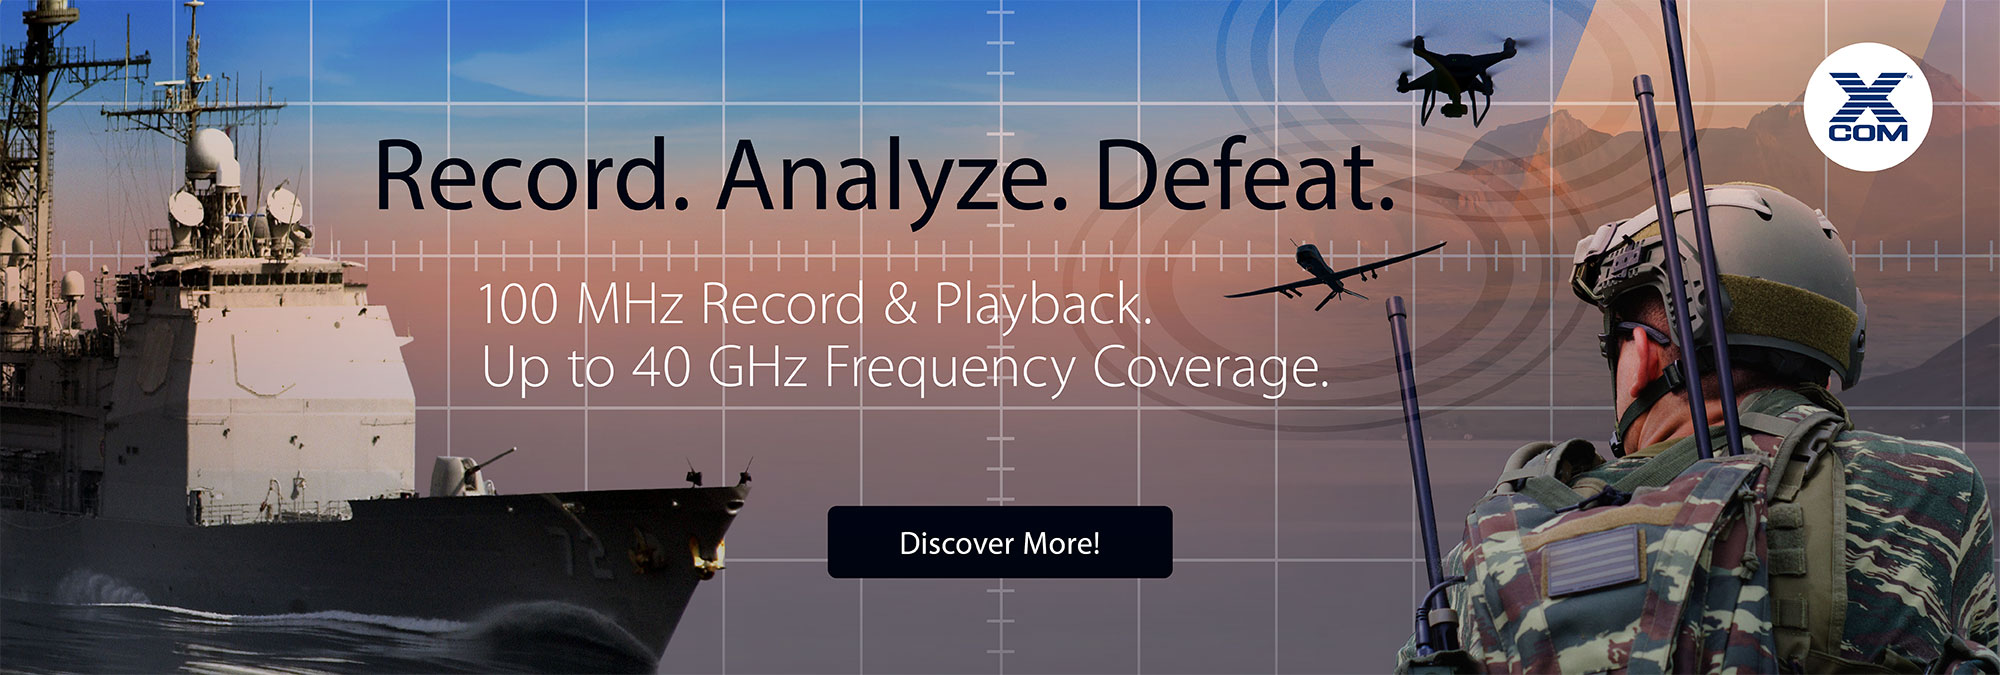 Record Analyze Defeat